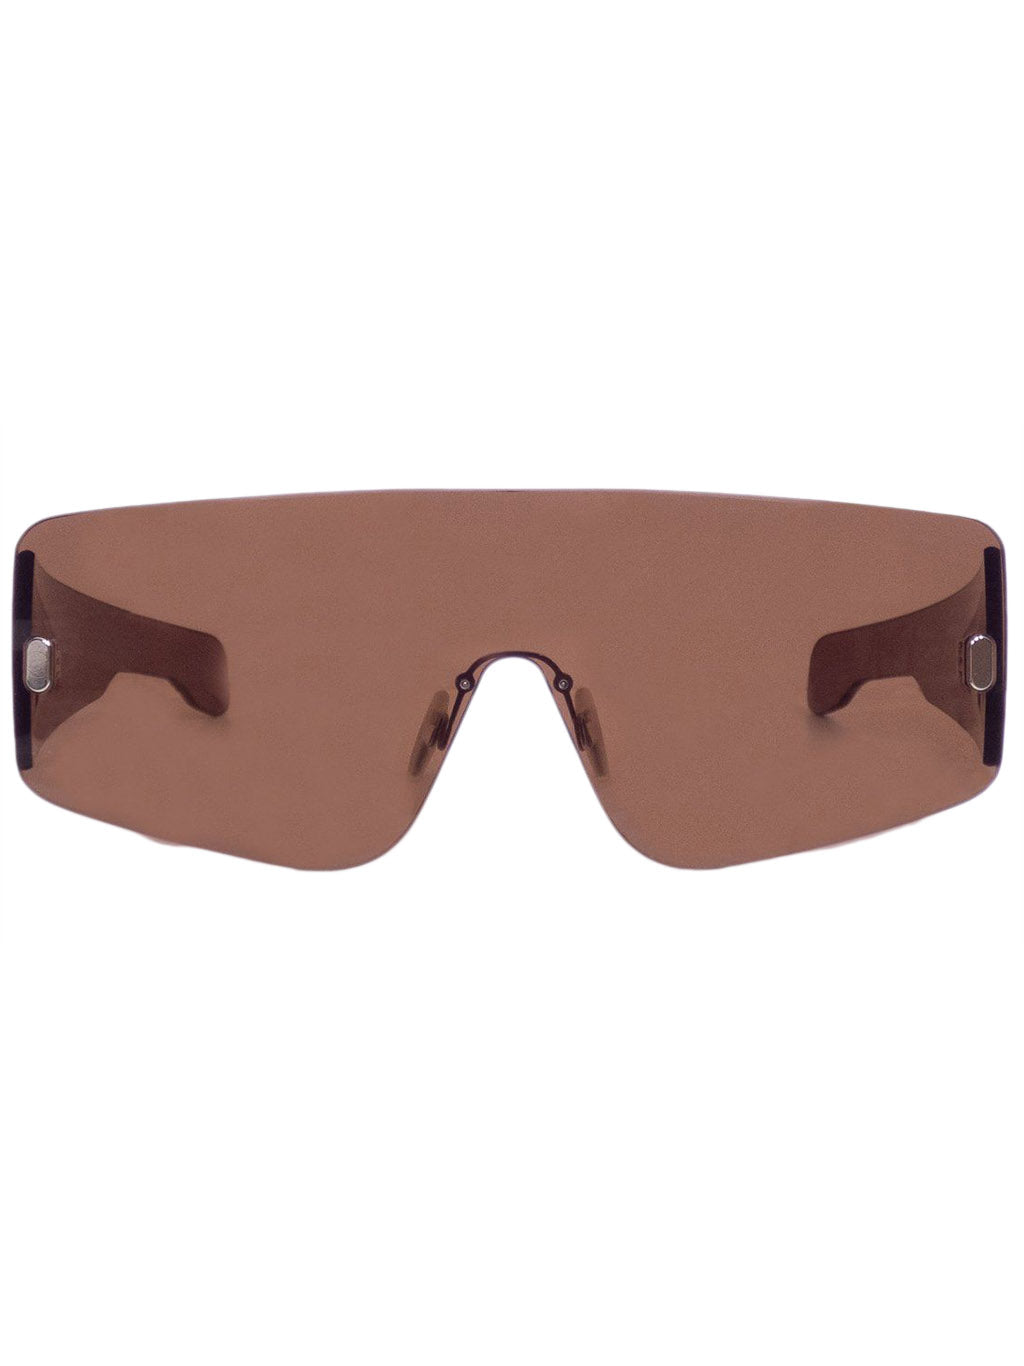 Brown Acetate Xenon Sunglasses